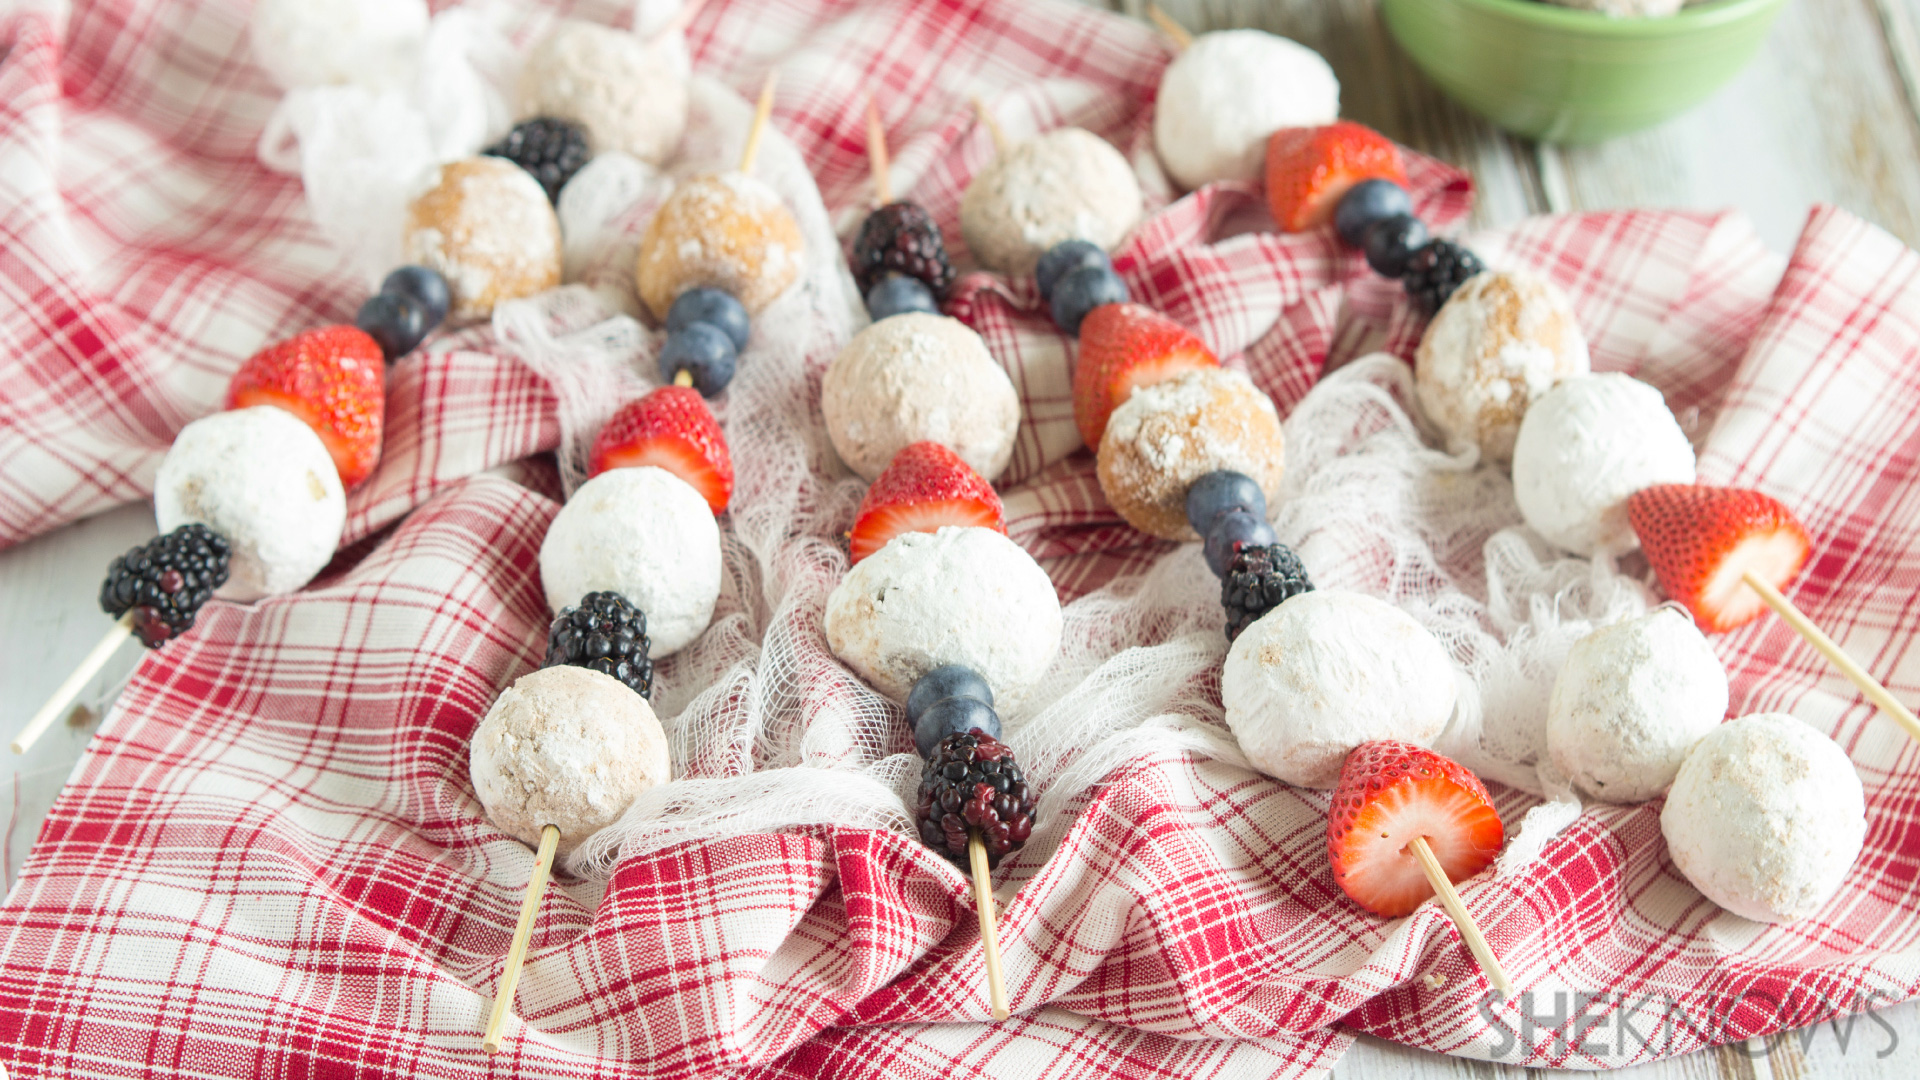 Donut hole kabobs with fresh fruit